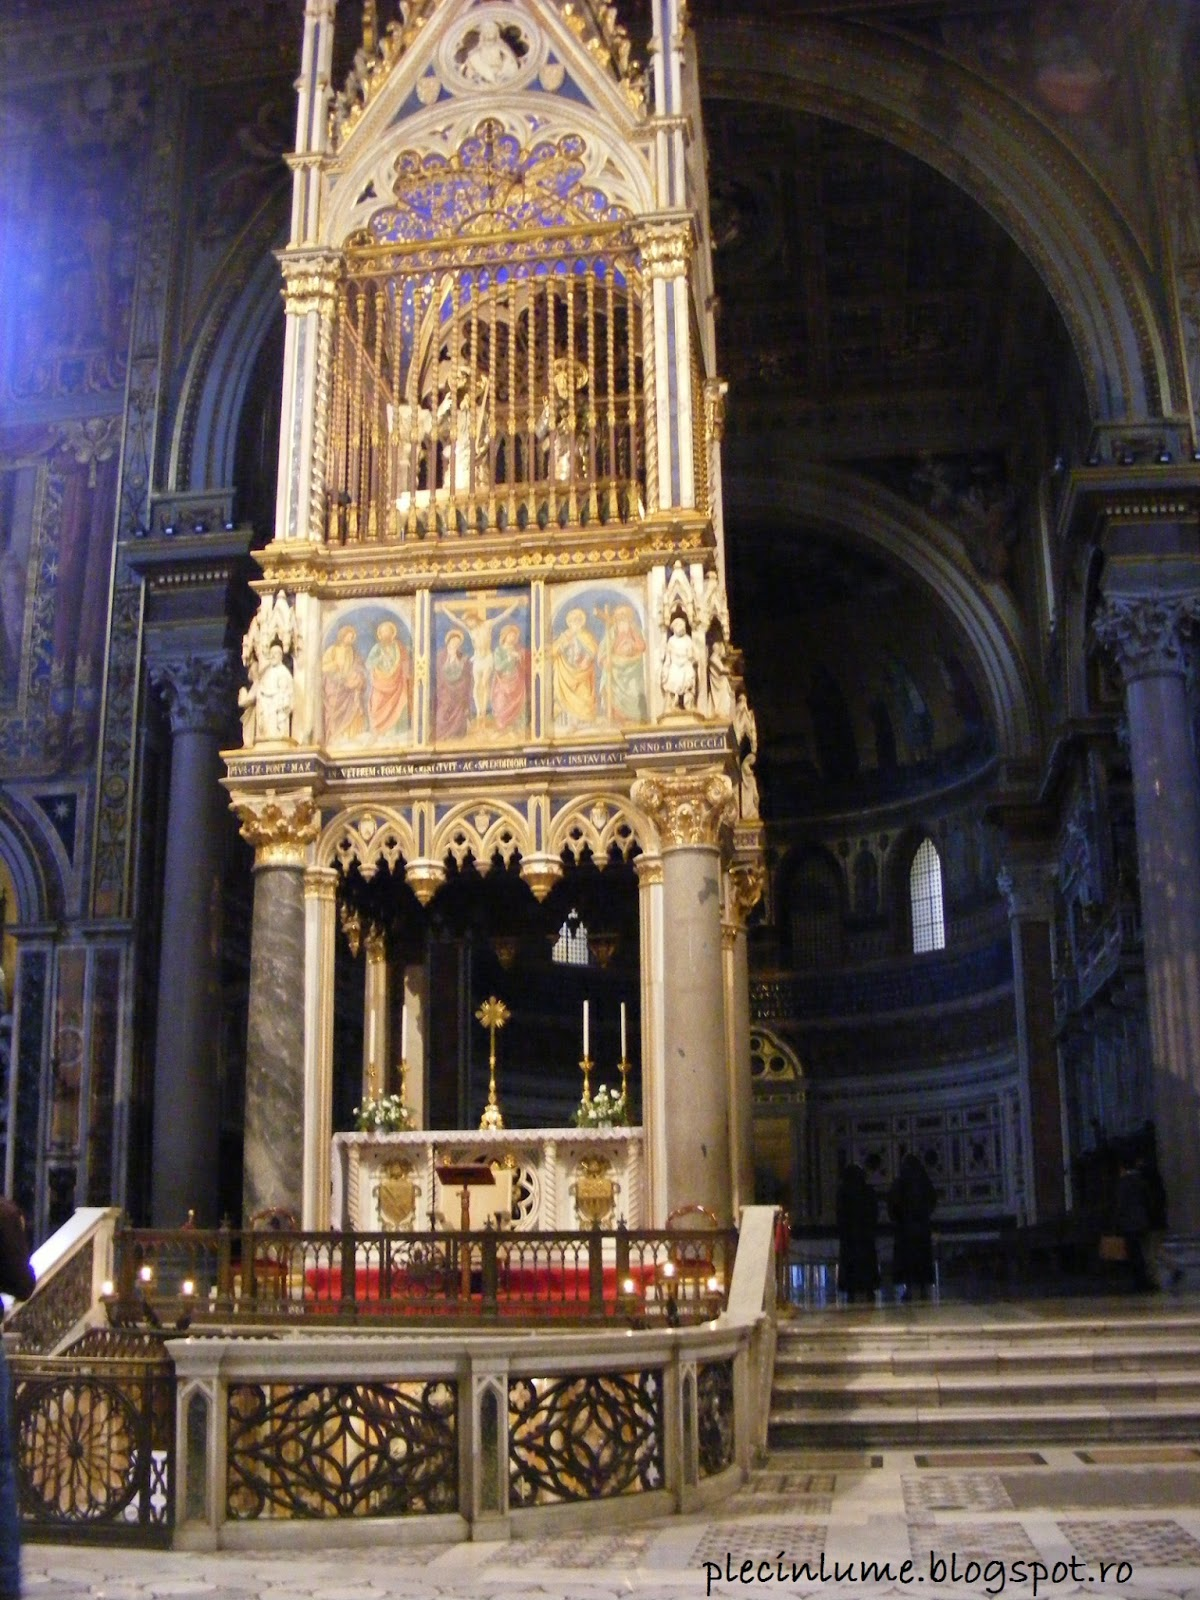 San Giovanni in Laterano in interior